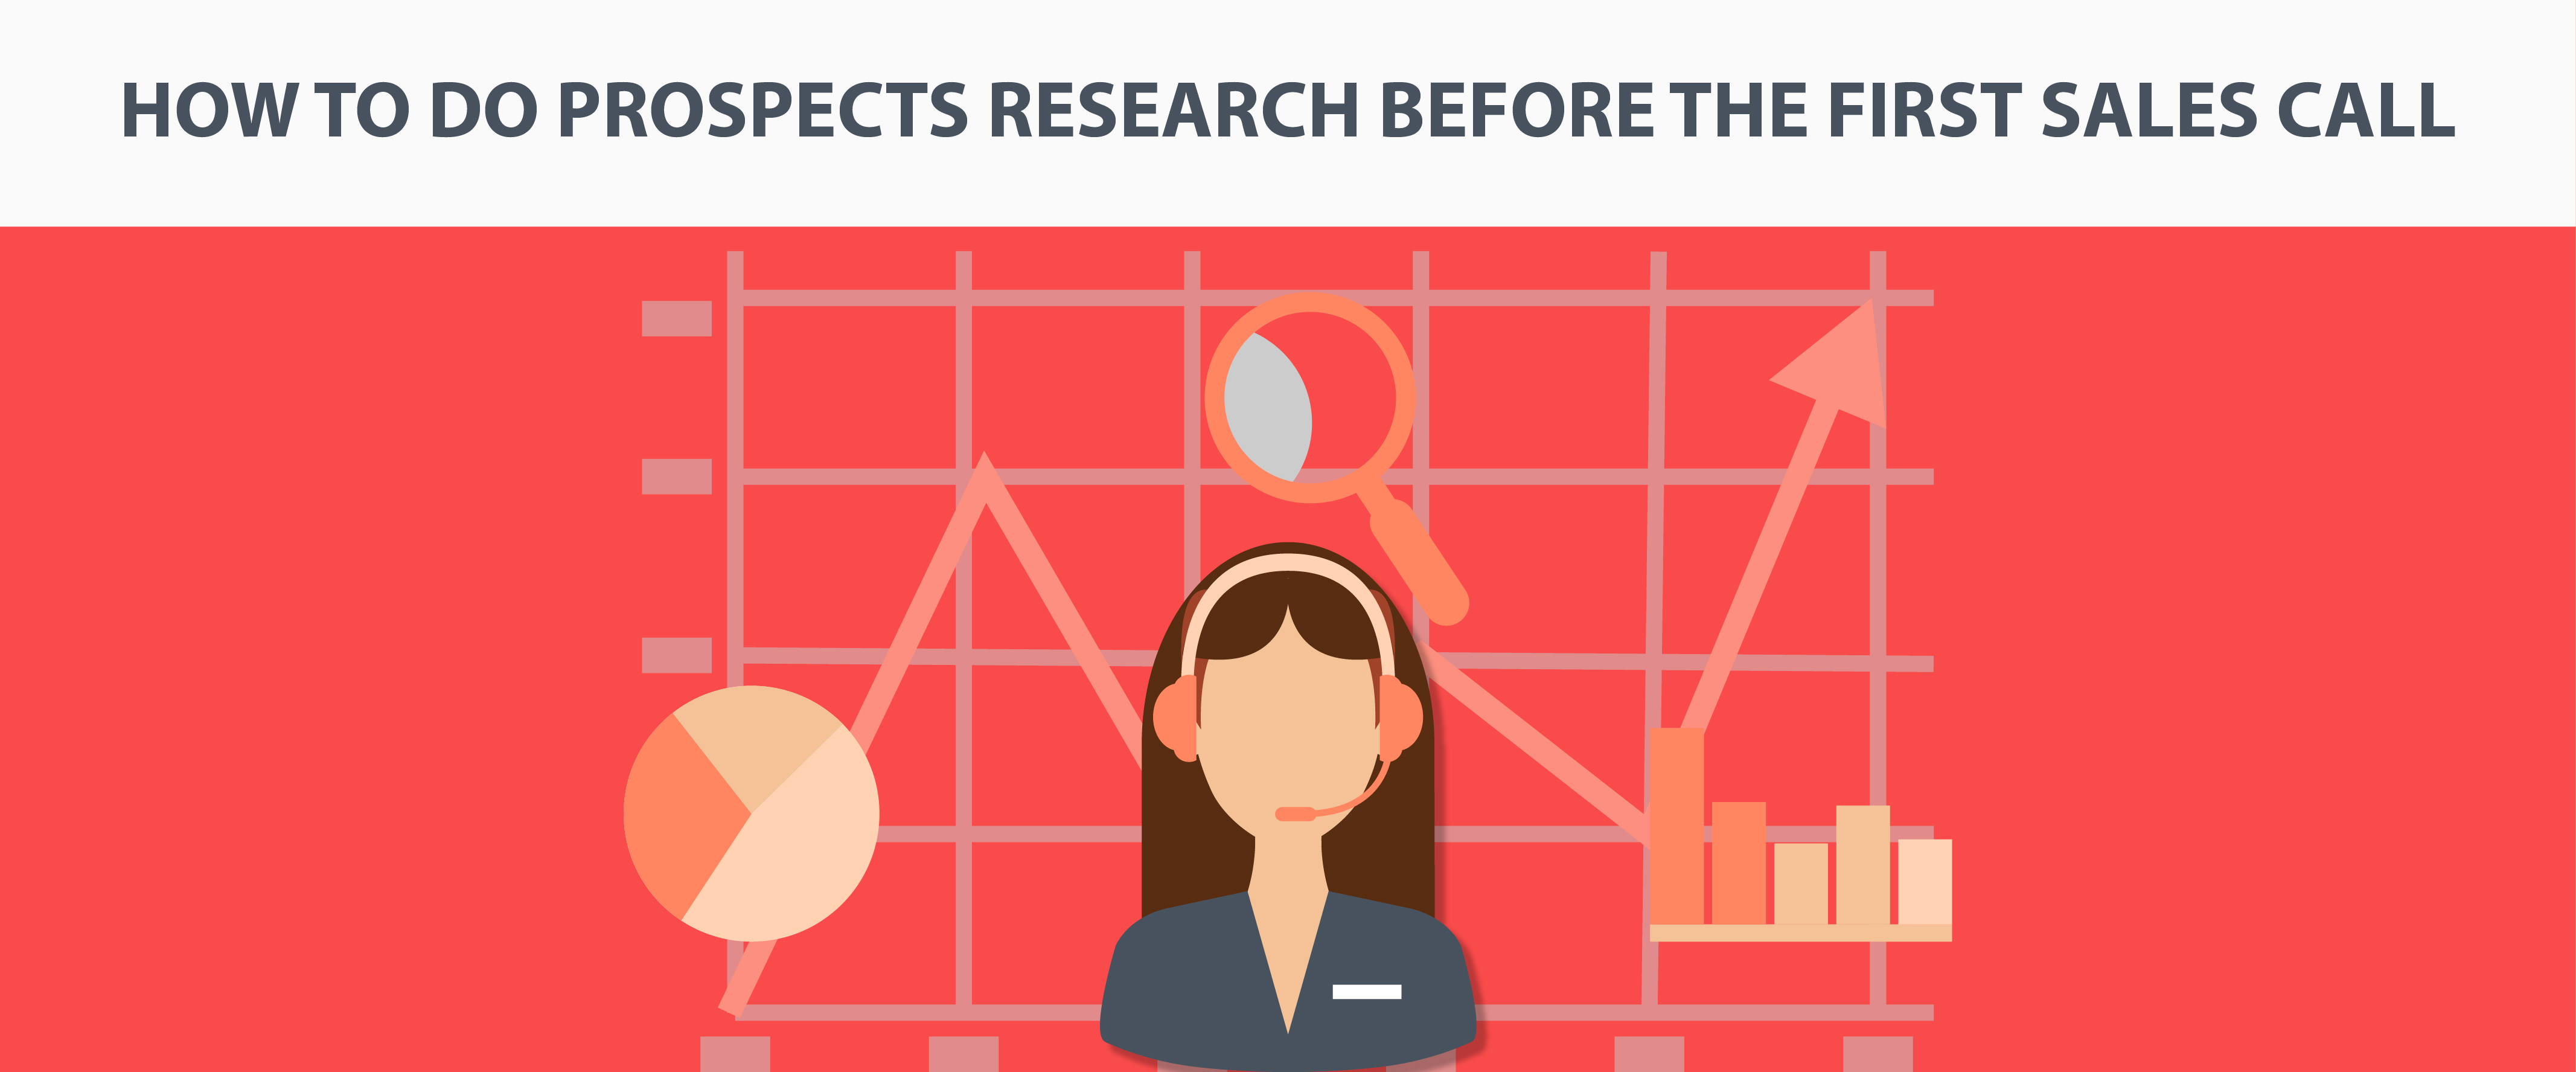 How to do Prospects Research Before the First Sales Call